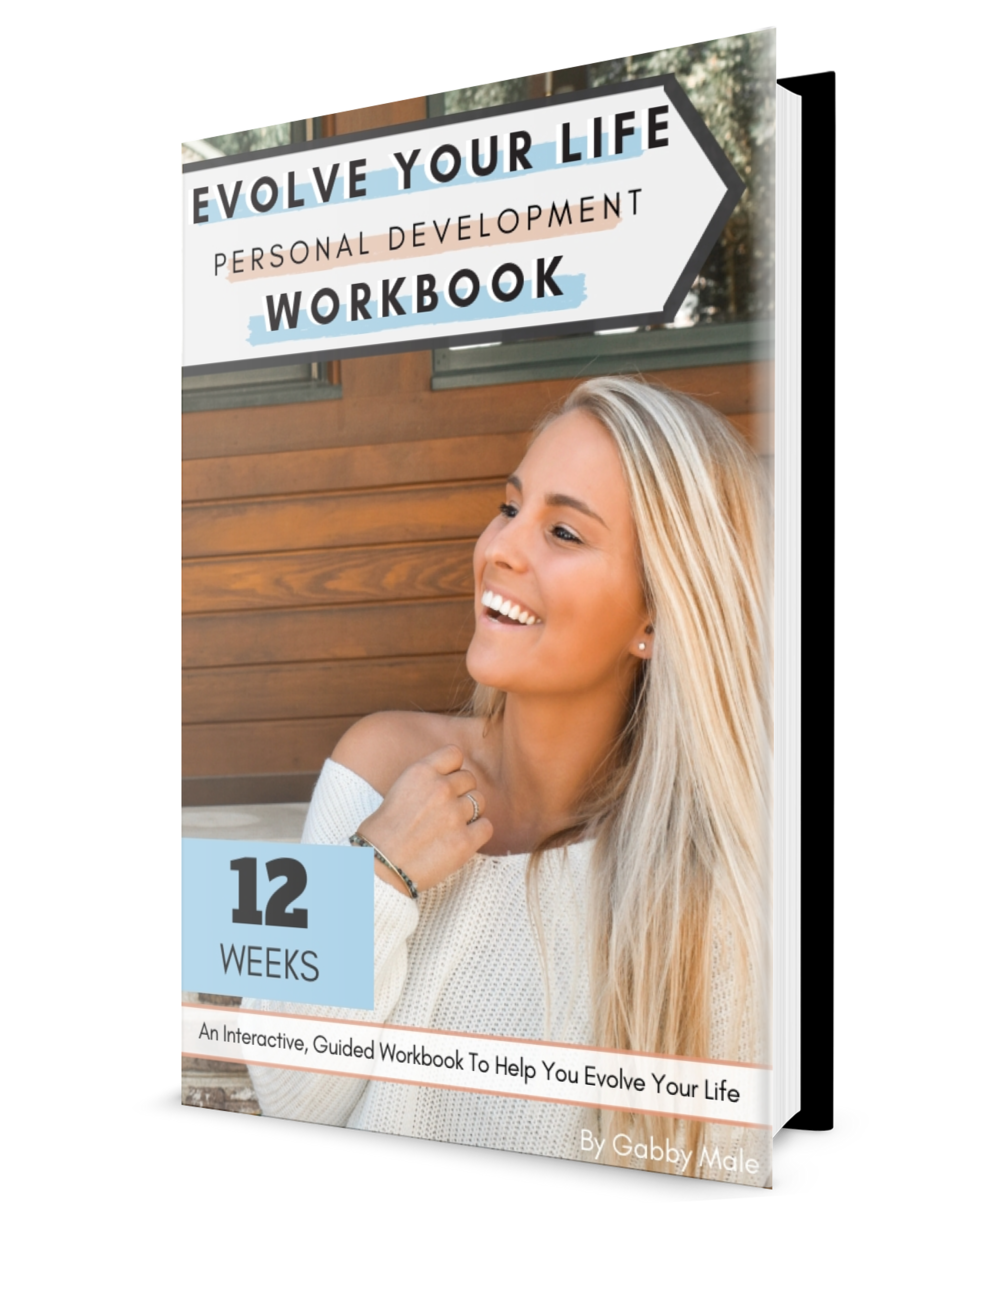 Workbook Included with group coaching